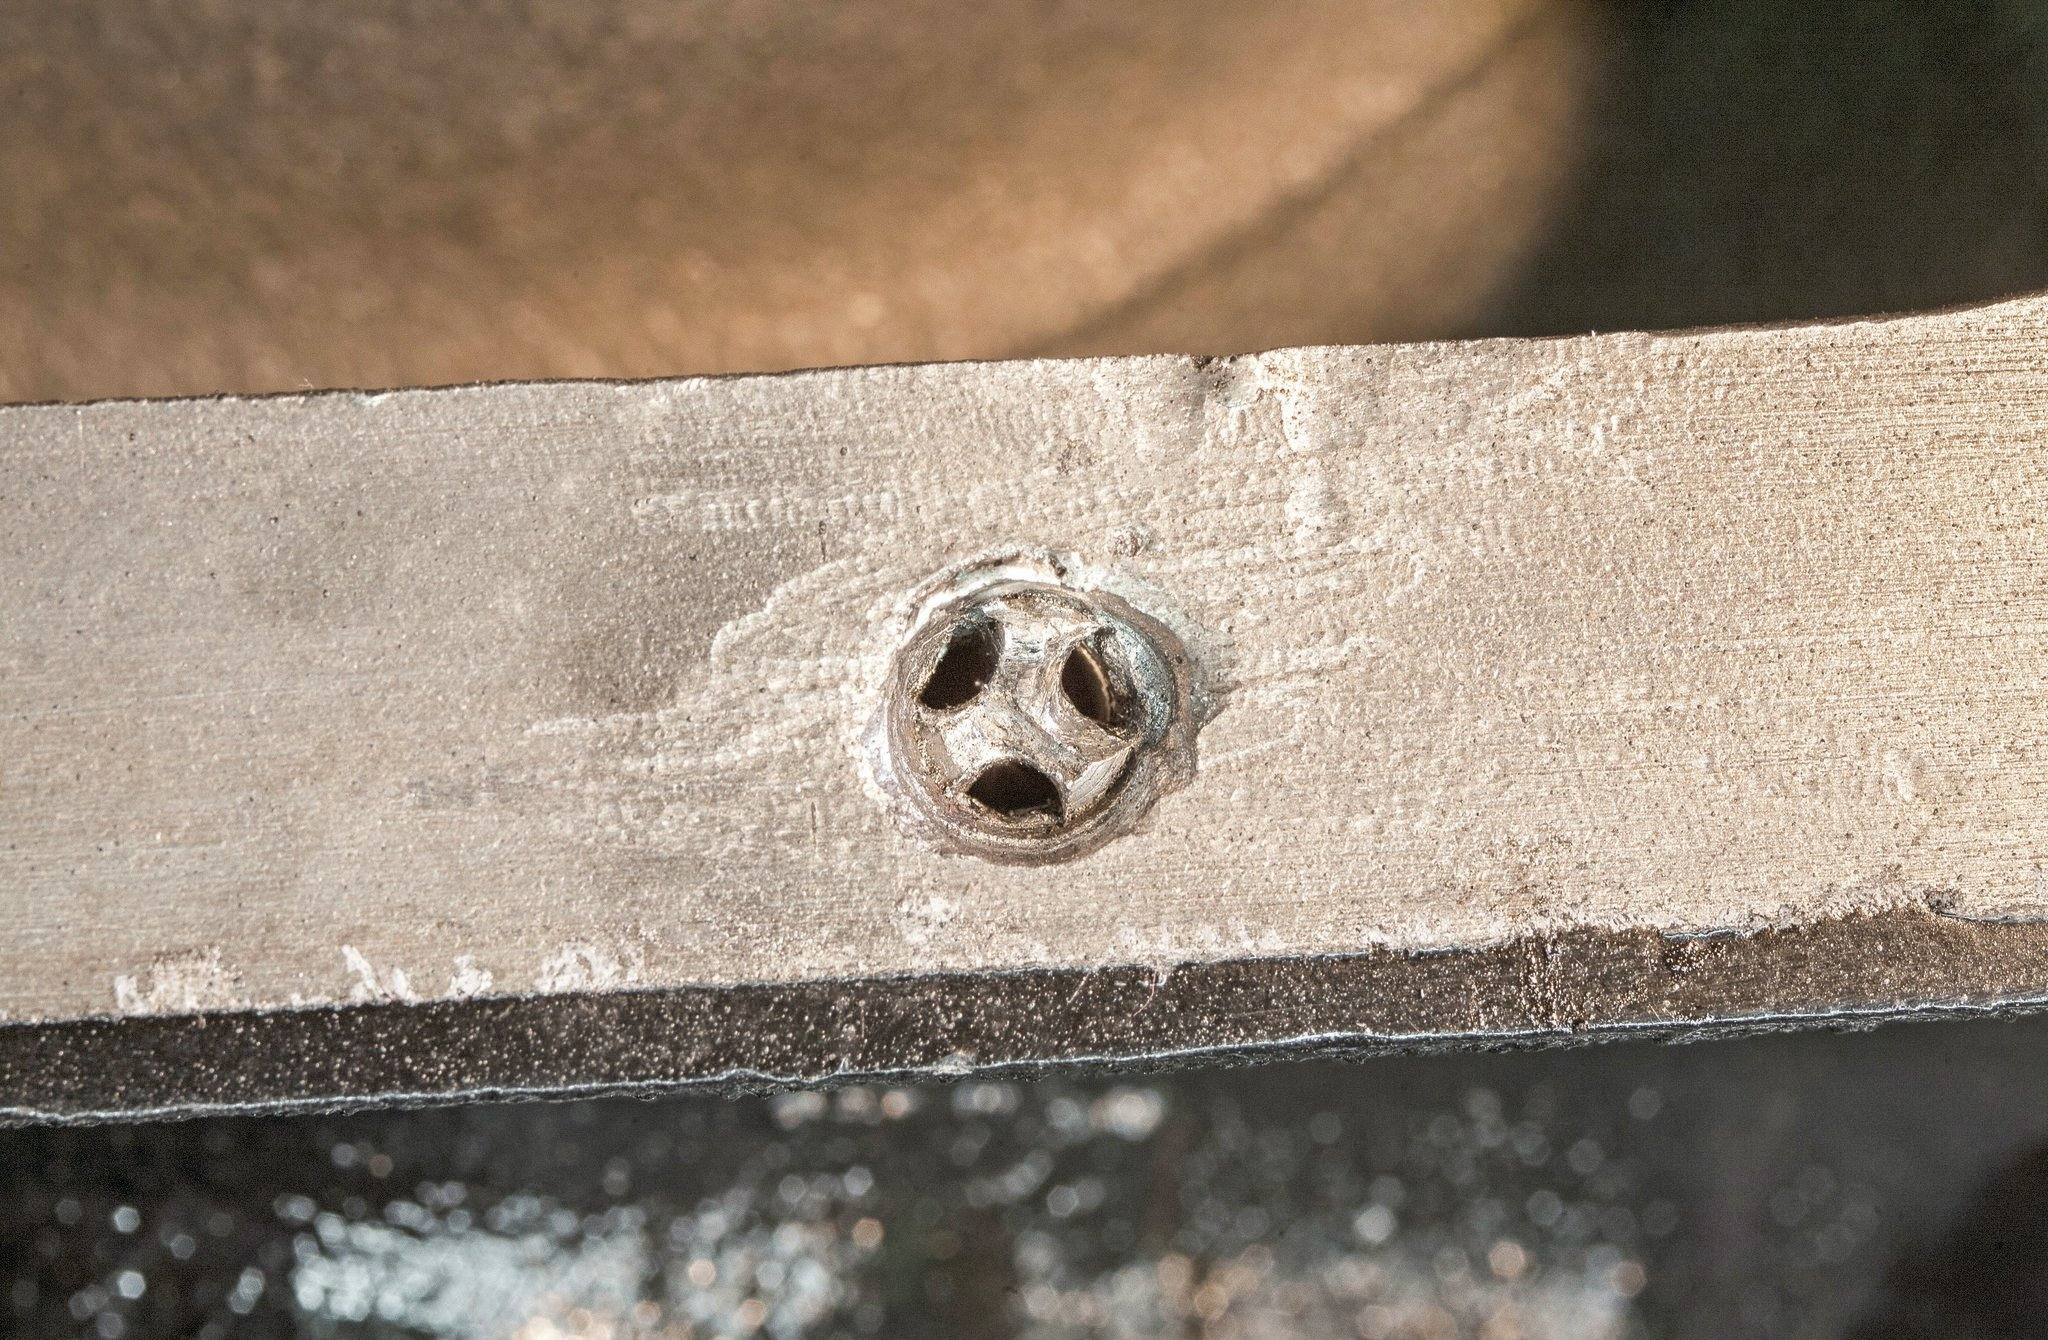 After a thread tap broke off in an oil-pan-rail bolt hole on Noah's 289 block, the usual methods were used in an attempt to remove it. They only made more of a mess. Time to send the block out to the professionals at Jim's Tap Extracting.